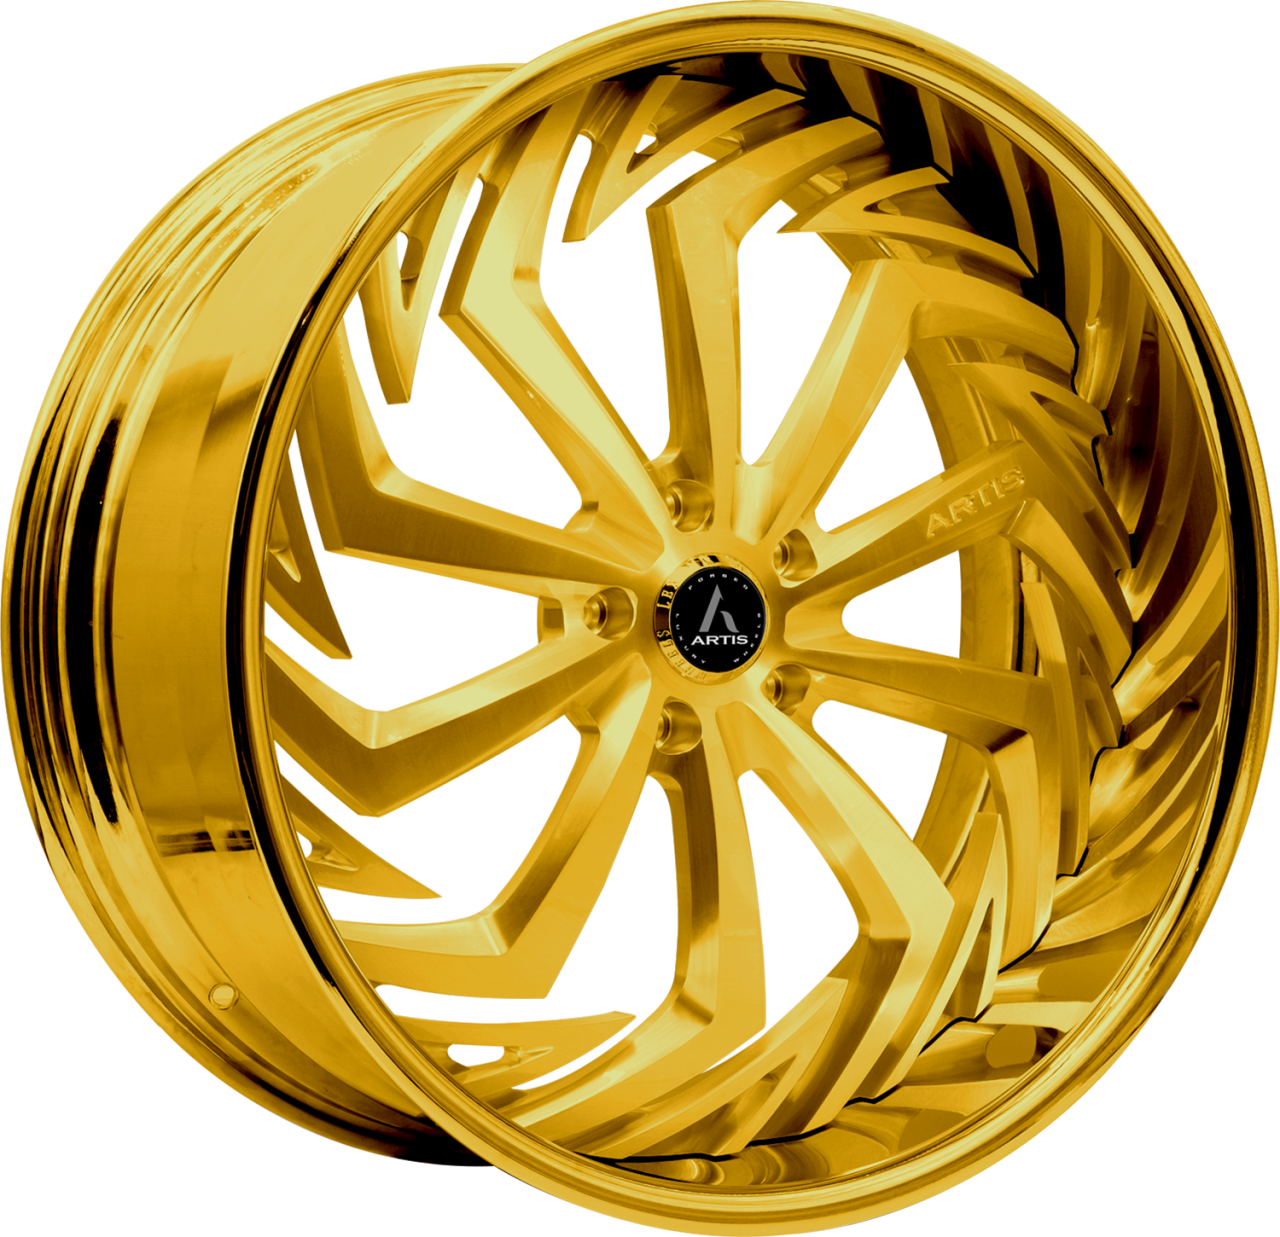 Artis Forged Royal wheel with Custom Gold finish